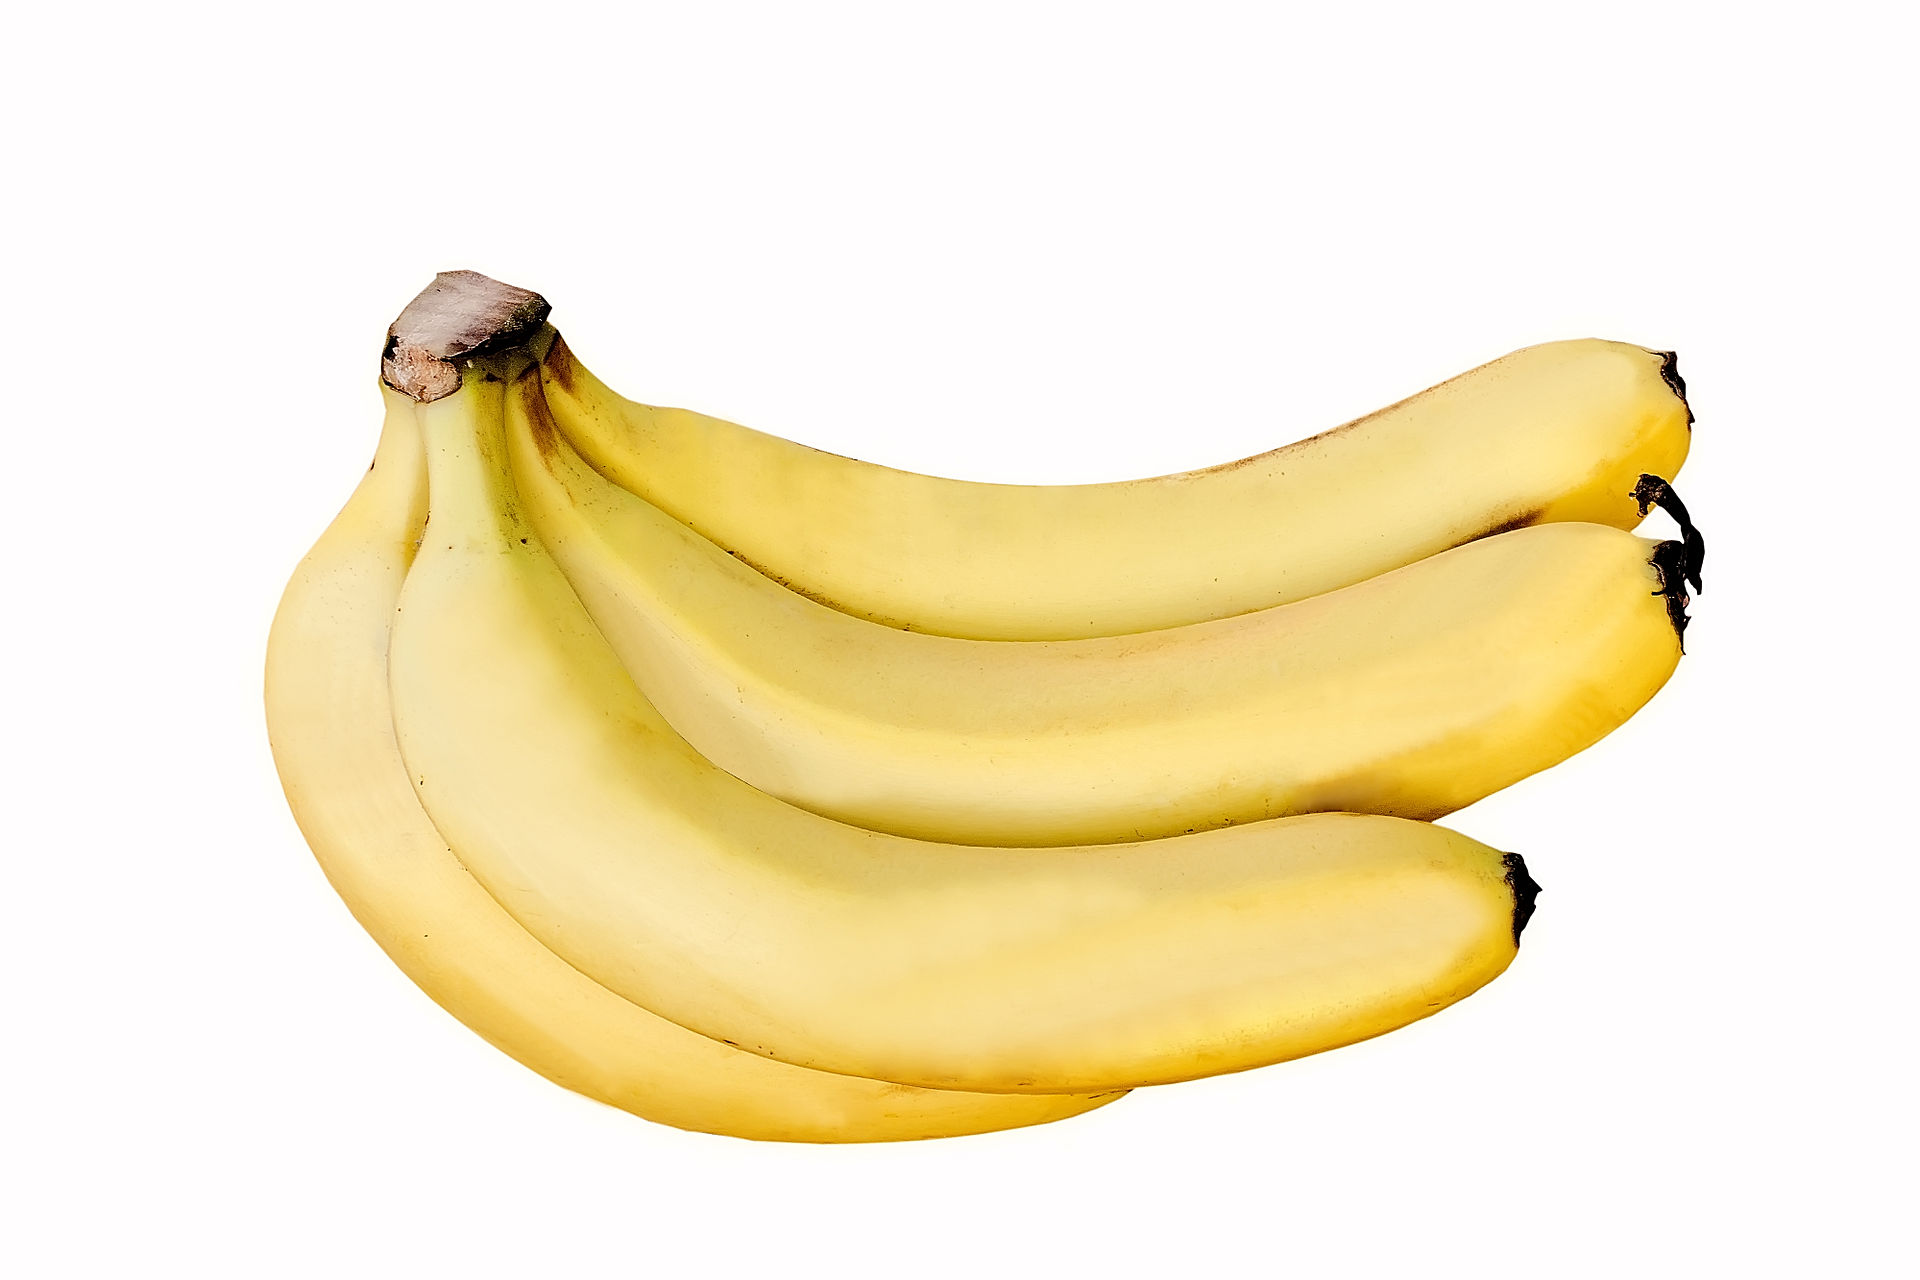 Cavendish banana Wikipedia